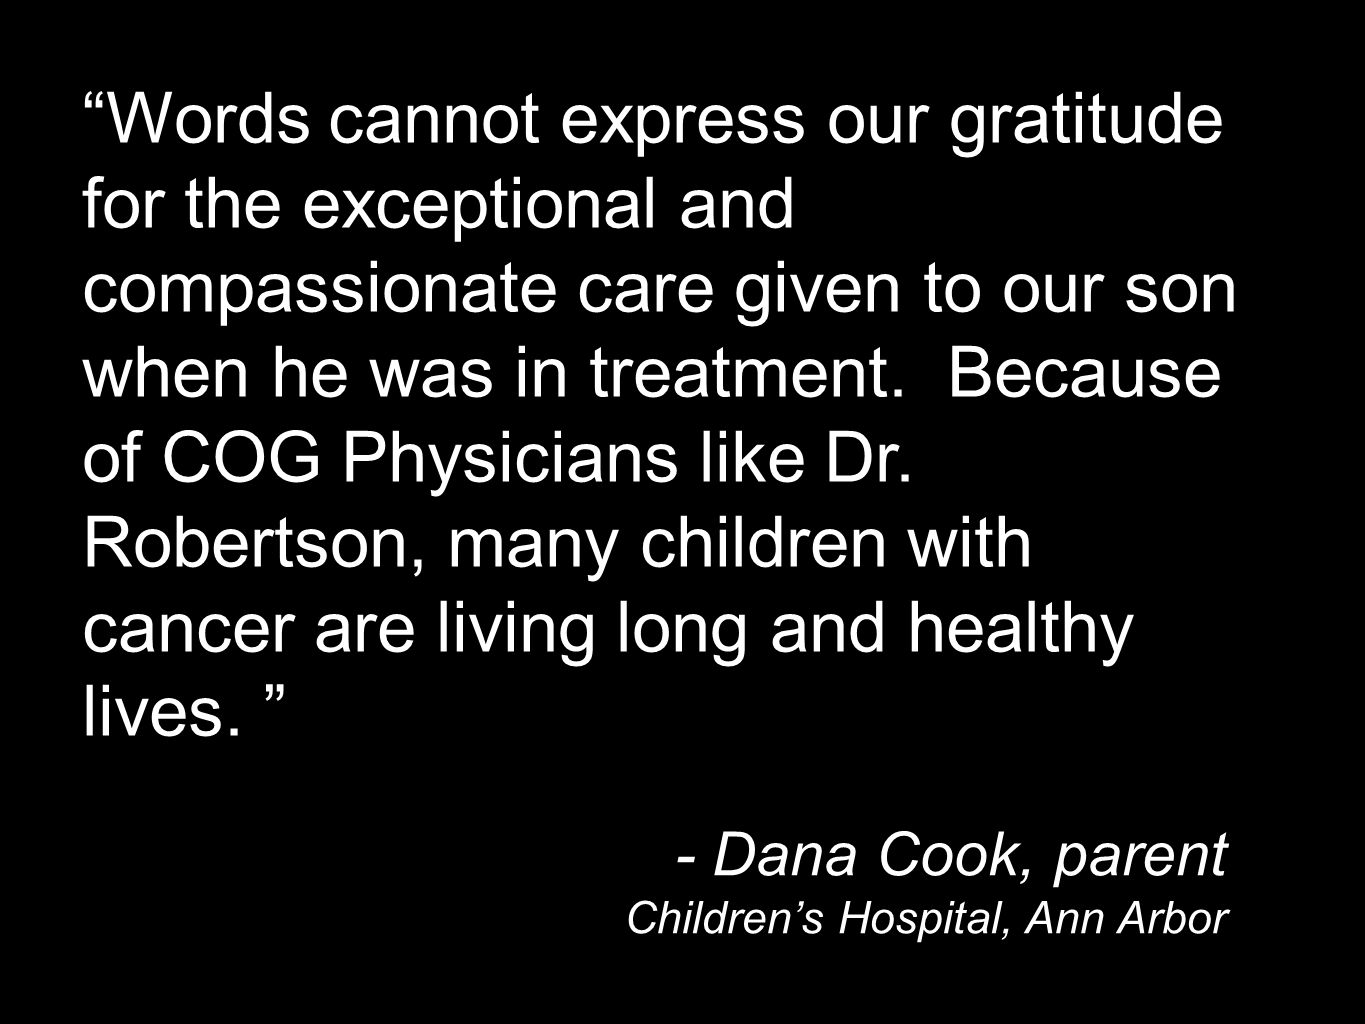 Words cannot express our gratitude for the exceptional and compassionate care given to our son when he was in treatment.